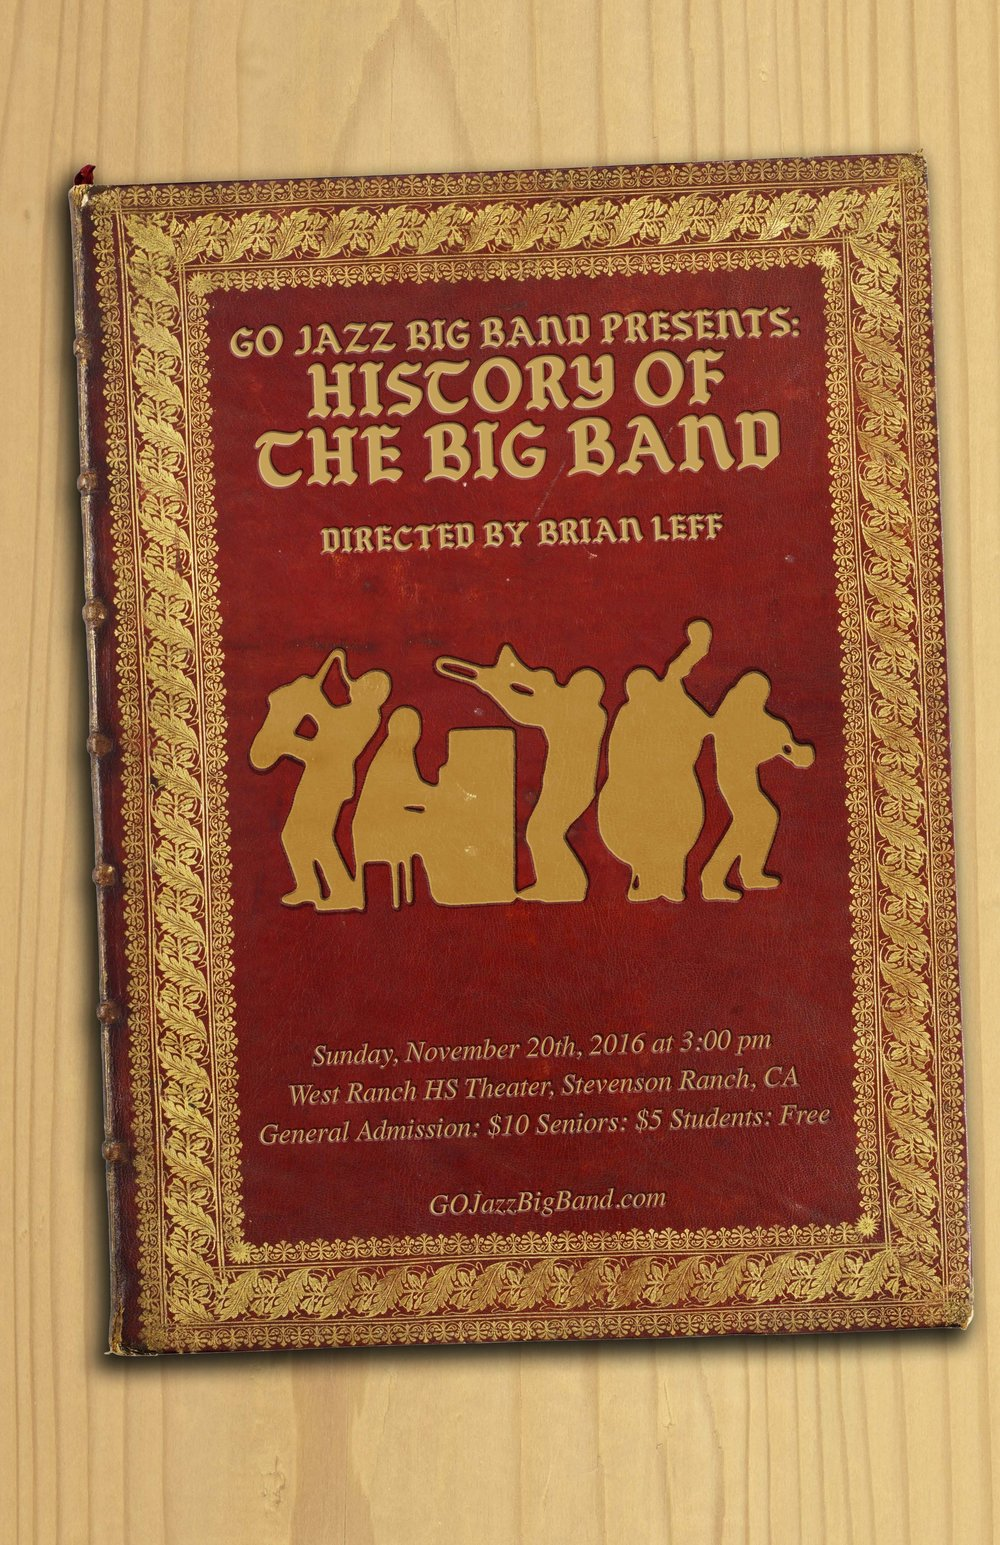 History of the Big Band